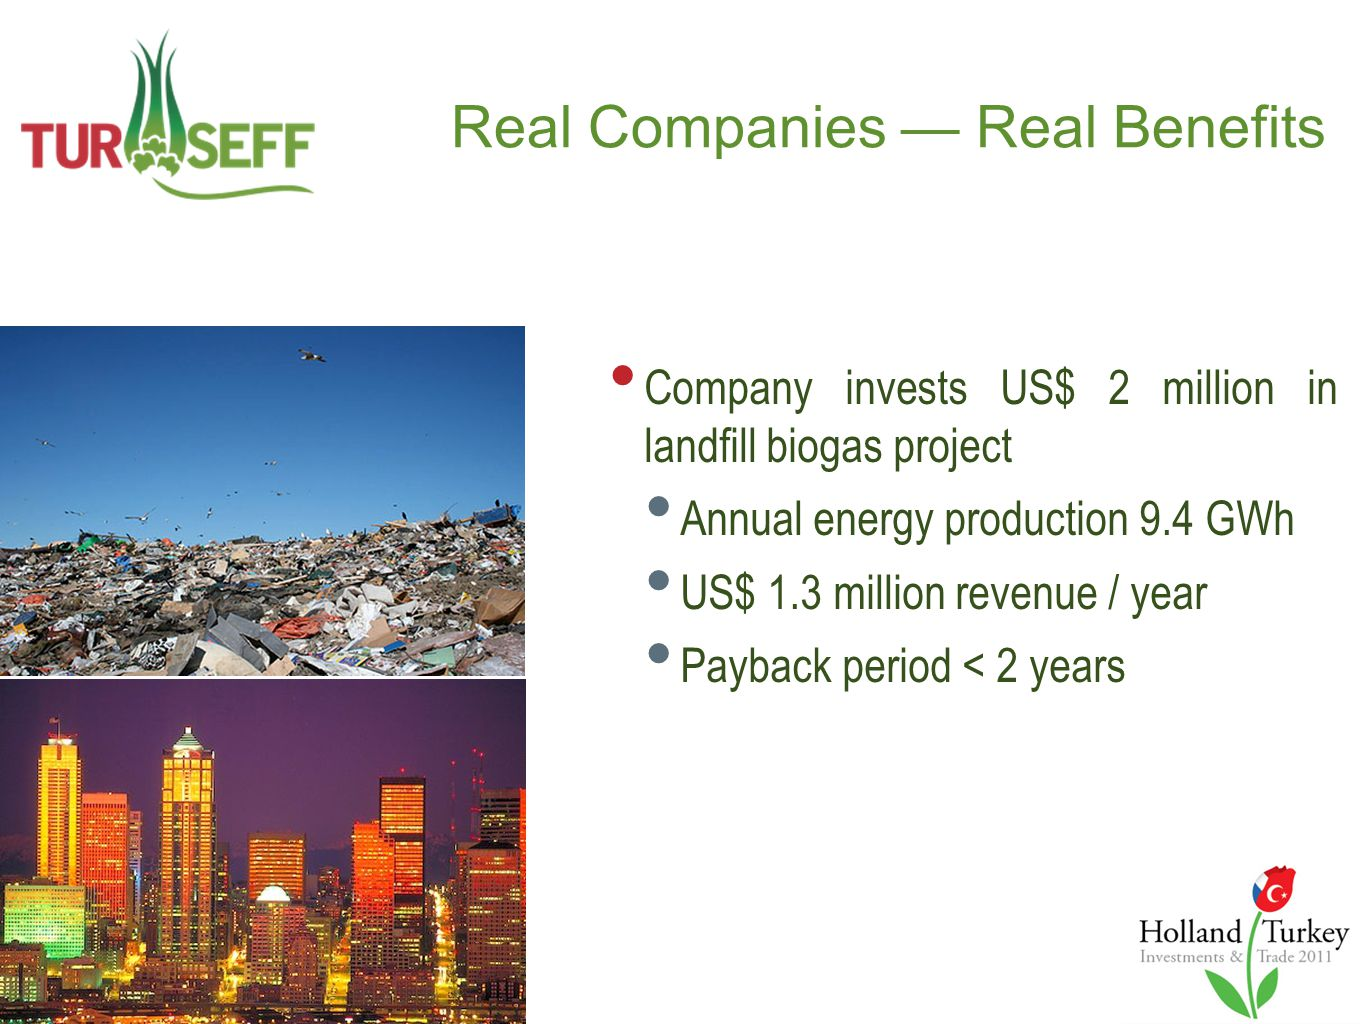 Real Companies — Real Benefits Company invests US$ 2 million in landfill biogas project Annual energy production 9.4 GWh US$ 1.3 million revenue / year Payback period < 2 years